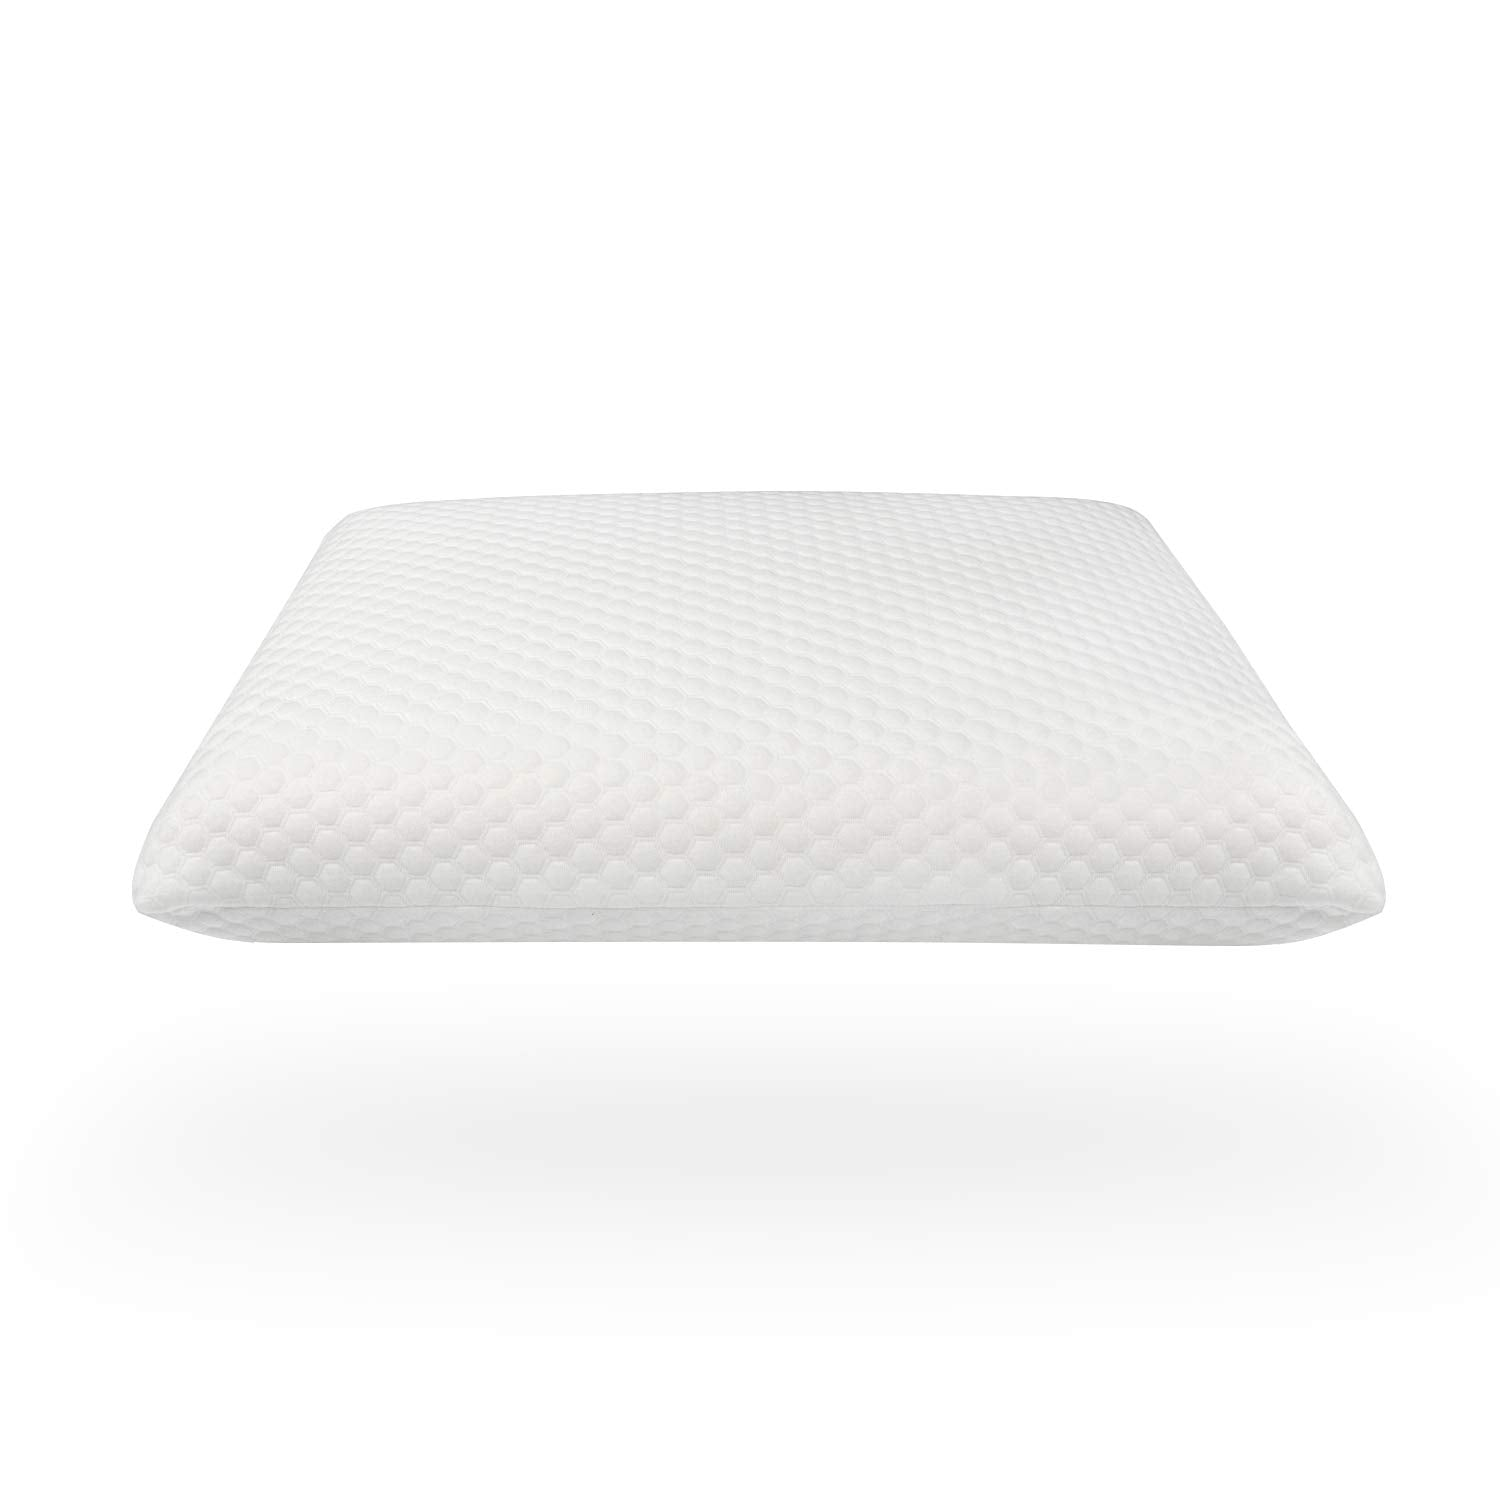 HomyLink-Memory-Foam-Bed-Gel-Pillows-Neck-Support-Pain-Relief-Hypoallergenic-with-Washable-Breathable